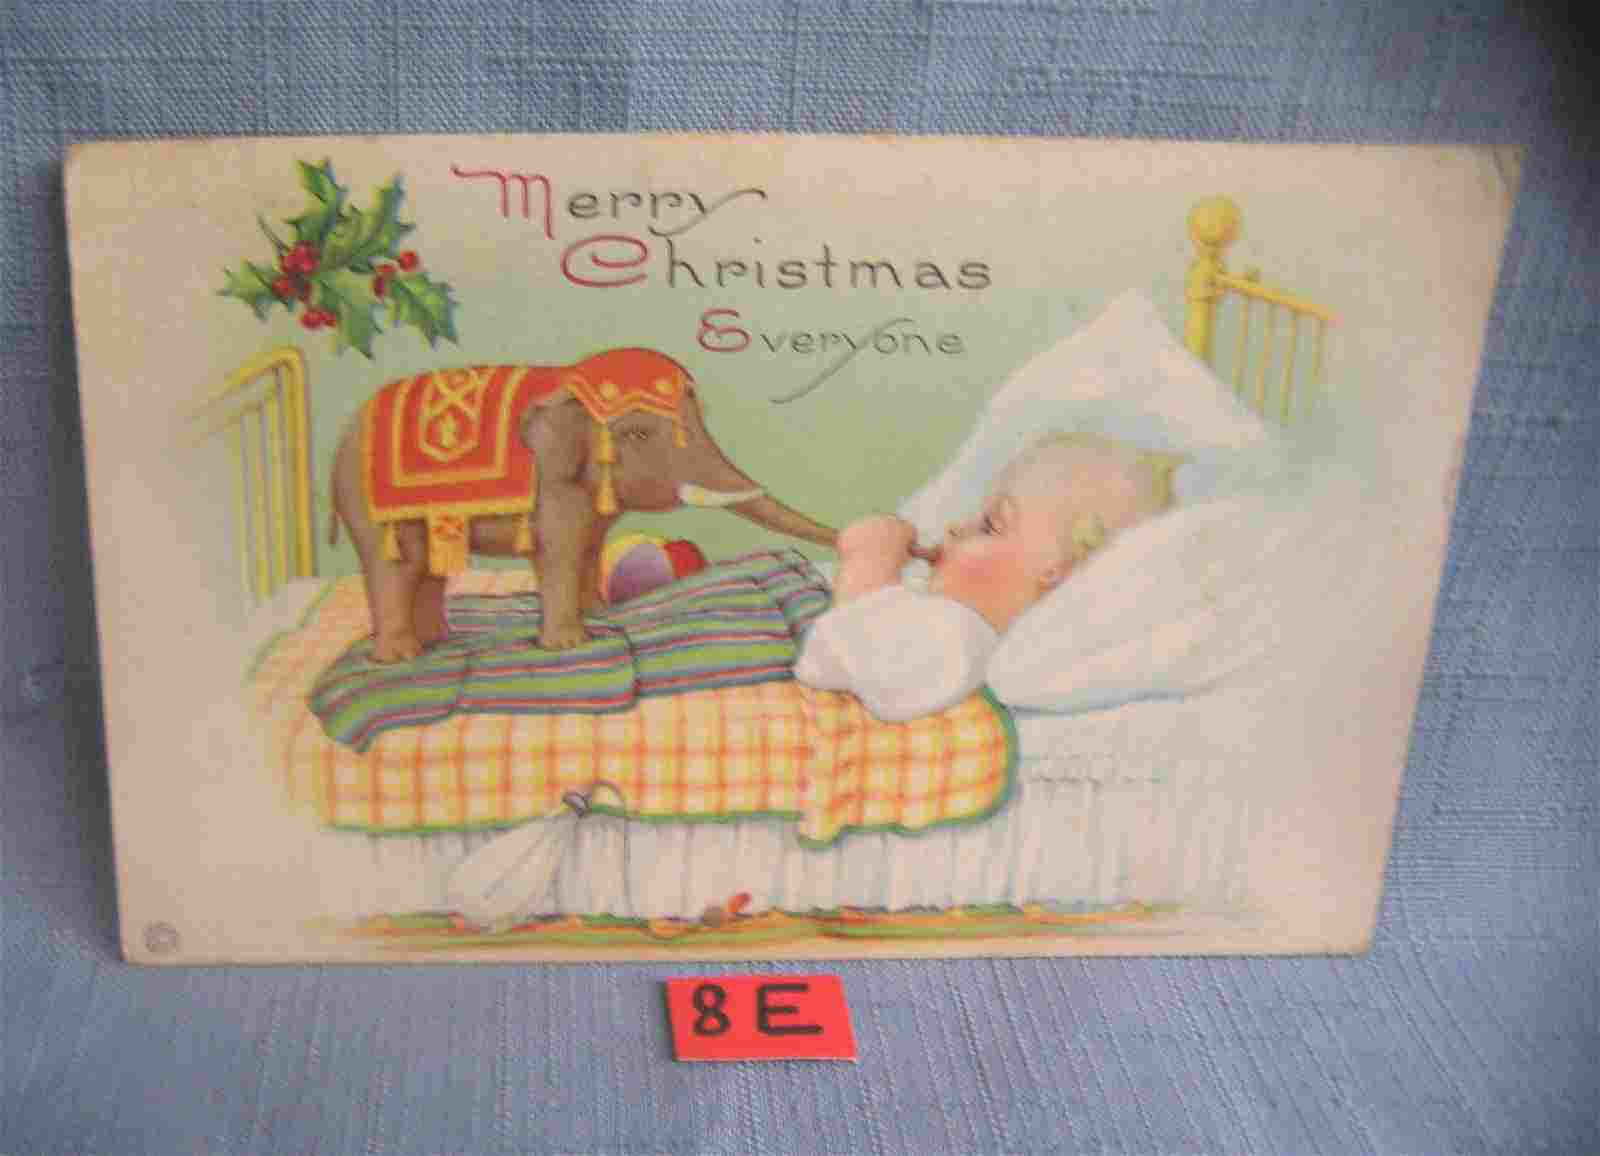 Christmas post card features a child with a Dumbo toy